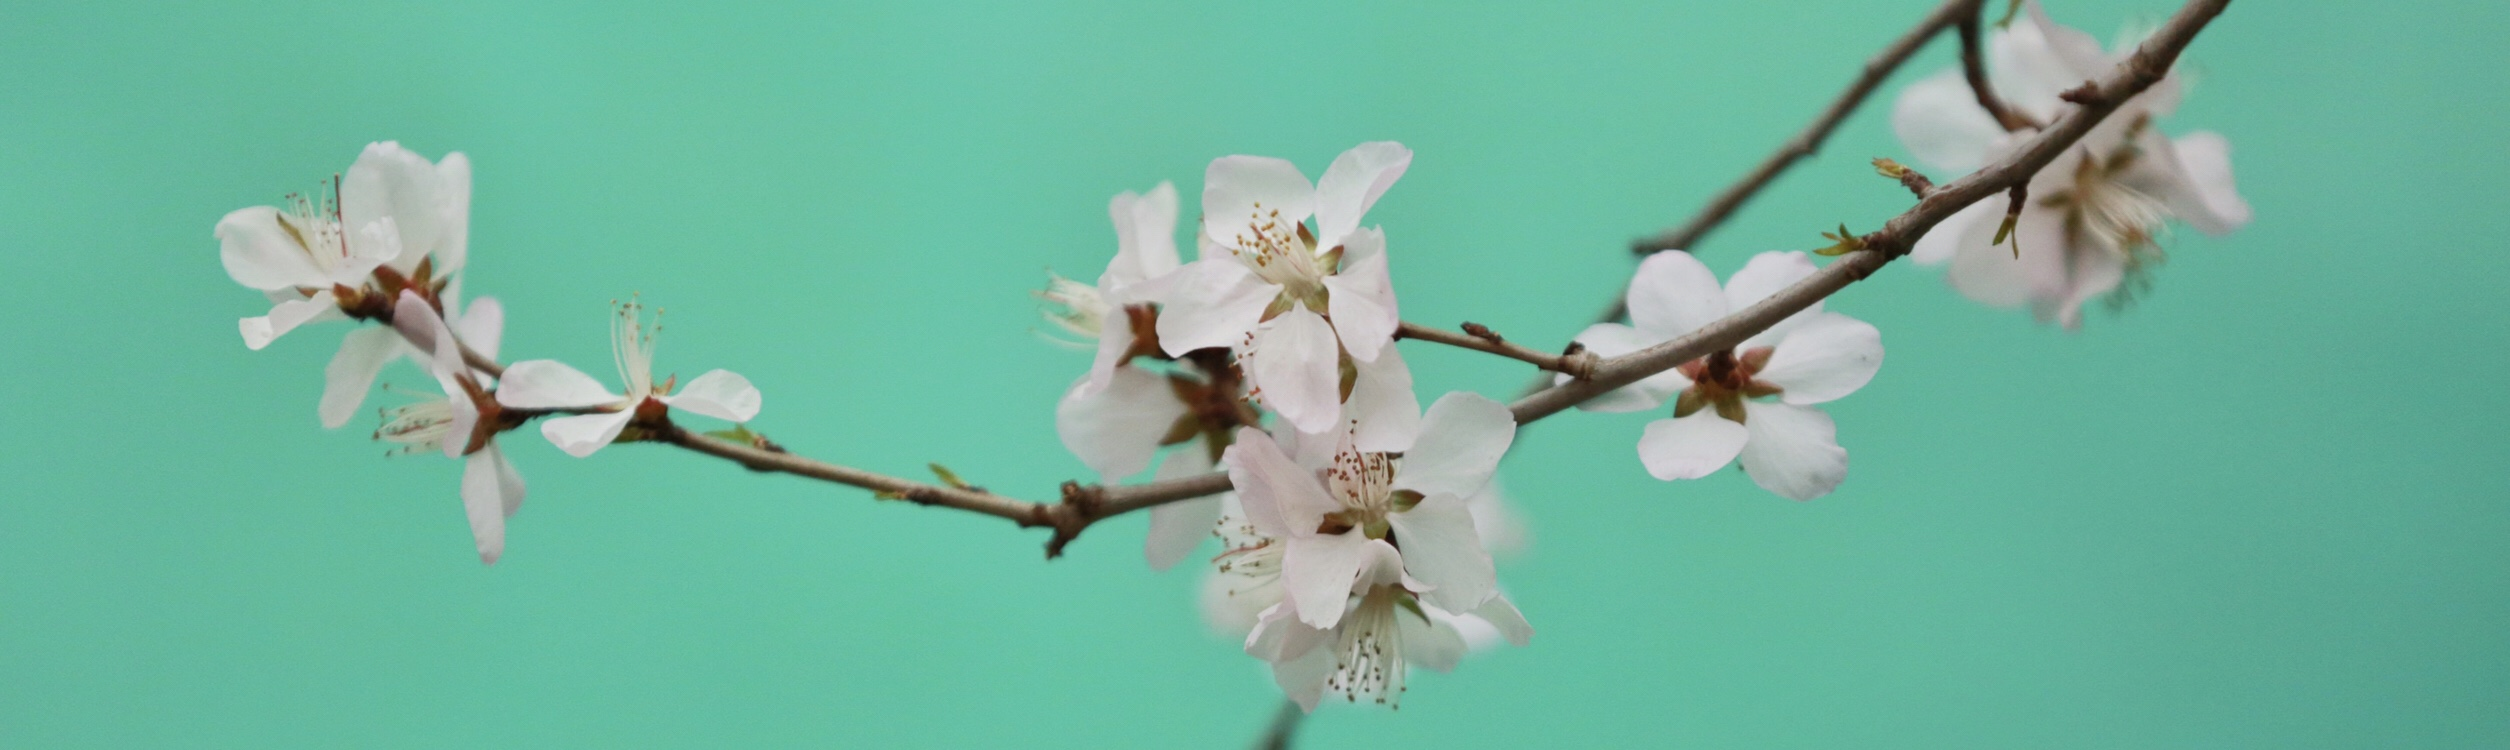 blossom on aqua background